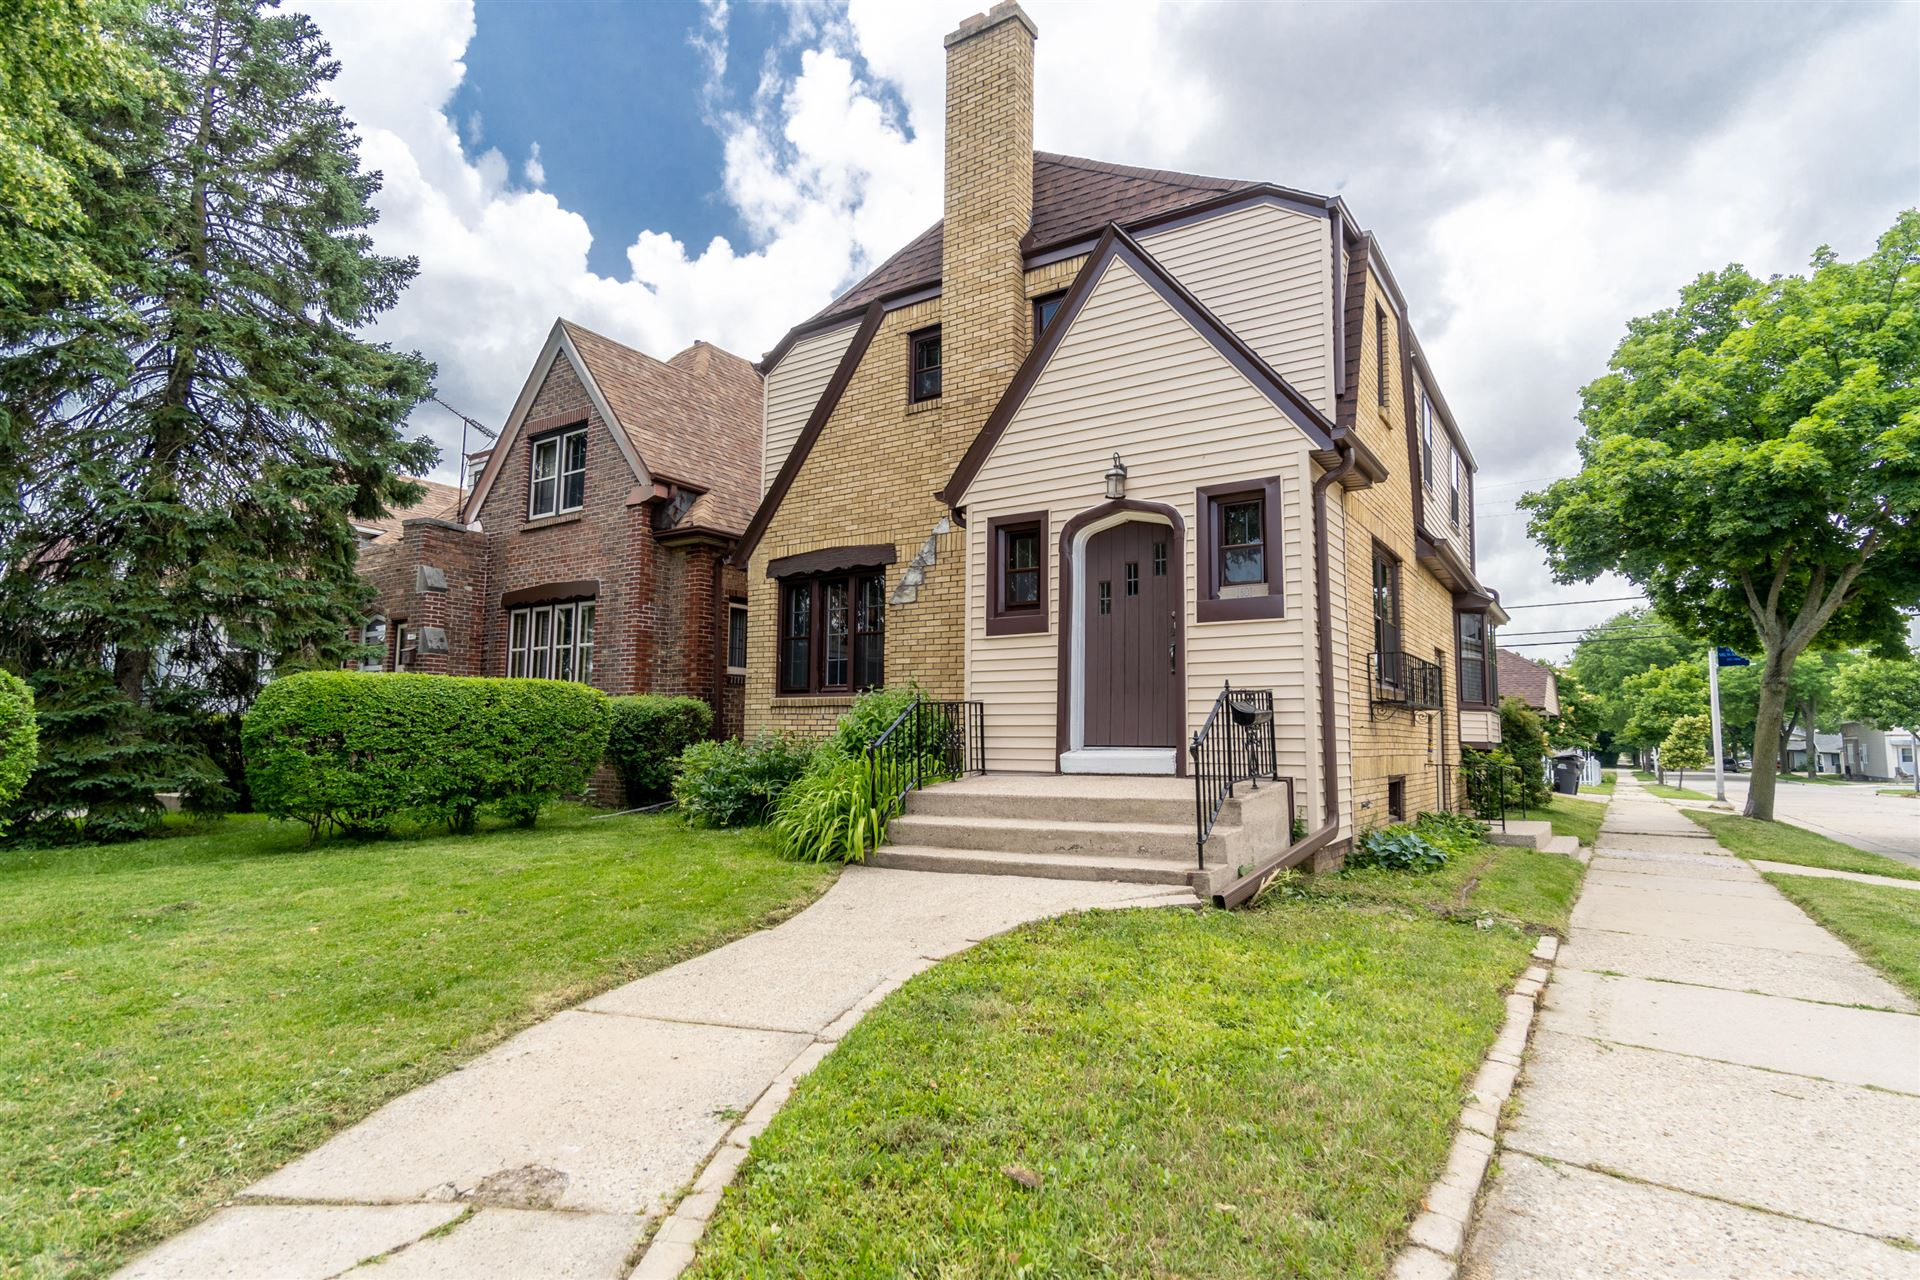 1601 S 55th St, West Milwaukee, WI 53214 - #: 1696476